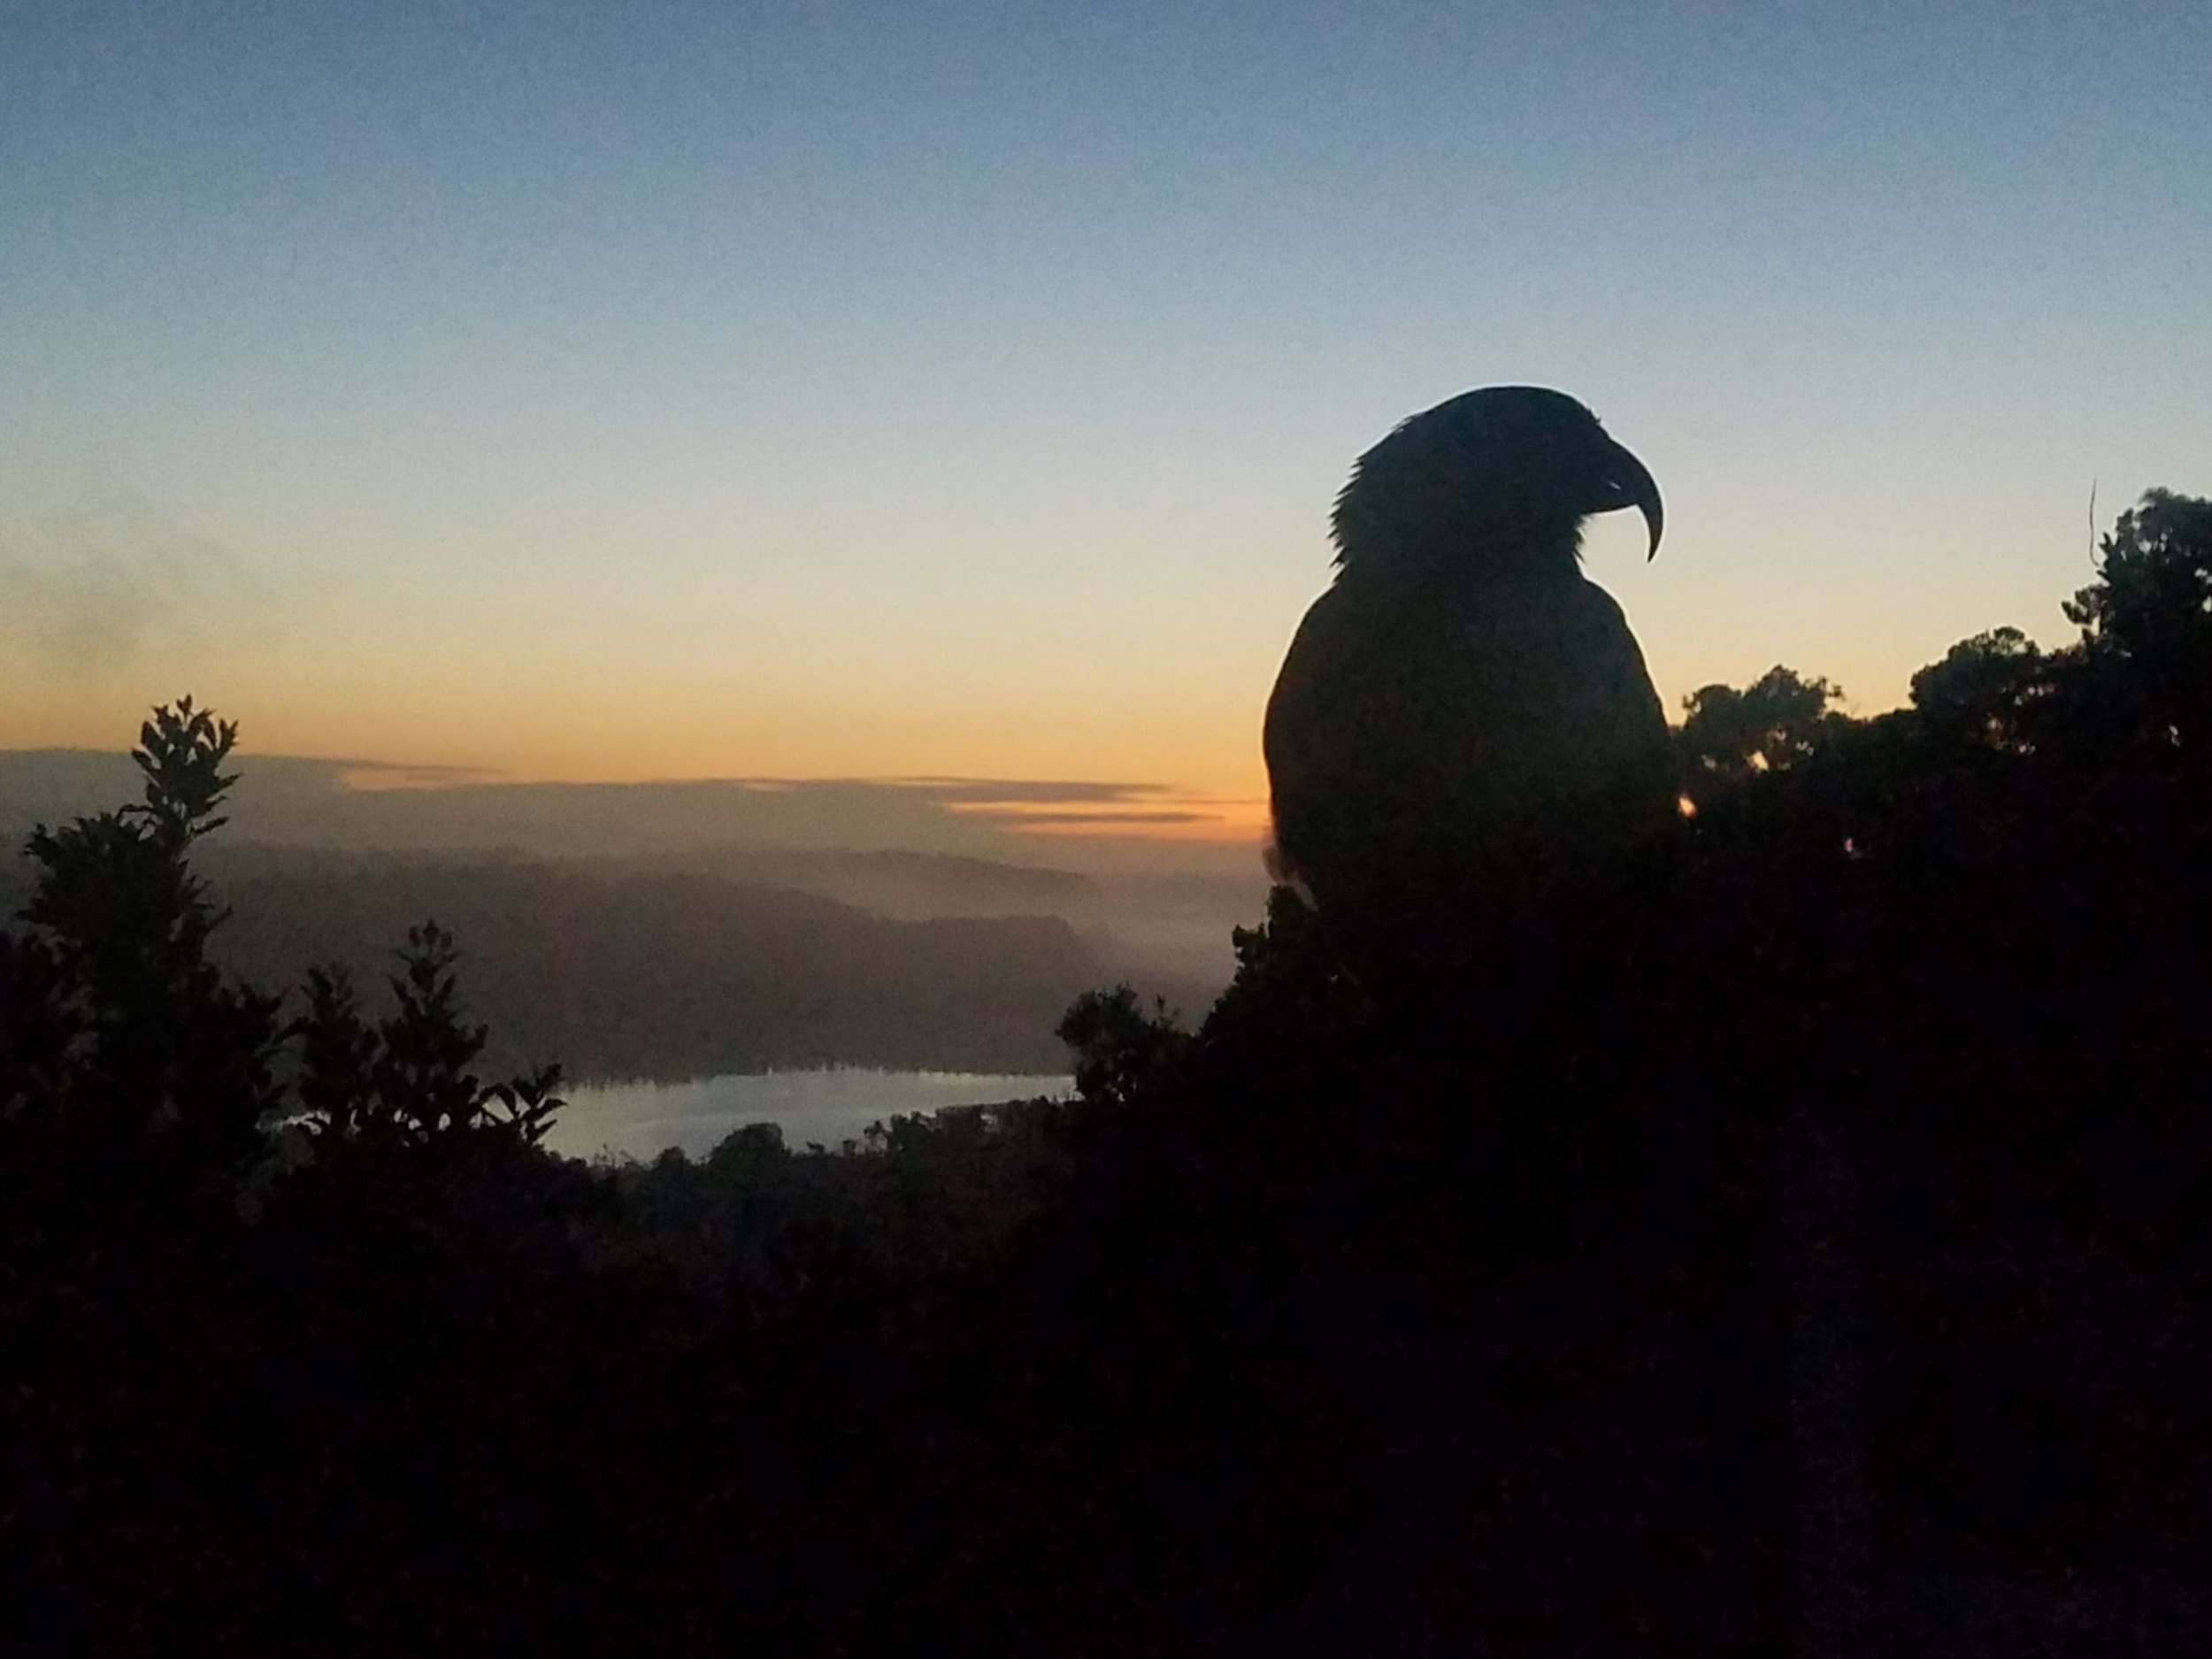 A Kea sitting on a branch in the sunset.